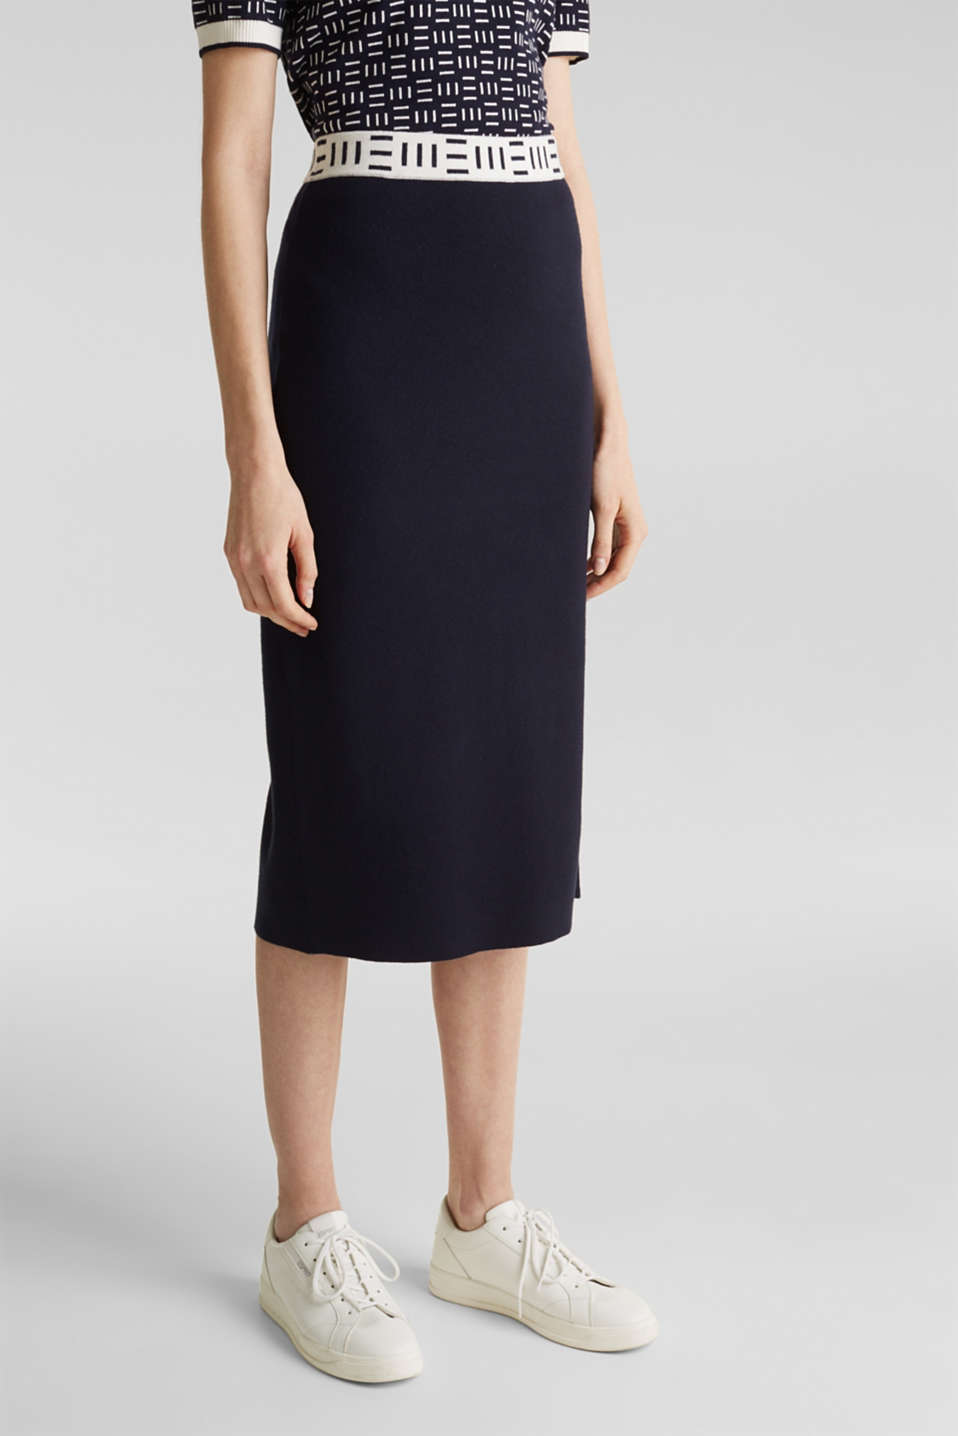 Slim-fitting knit skirt with a logo waistband, NAVY, detail image number 5